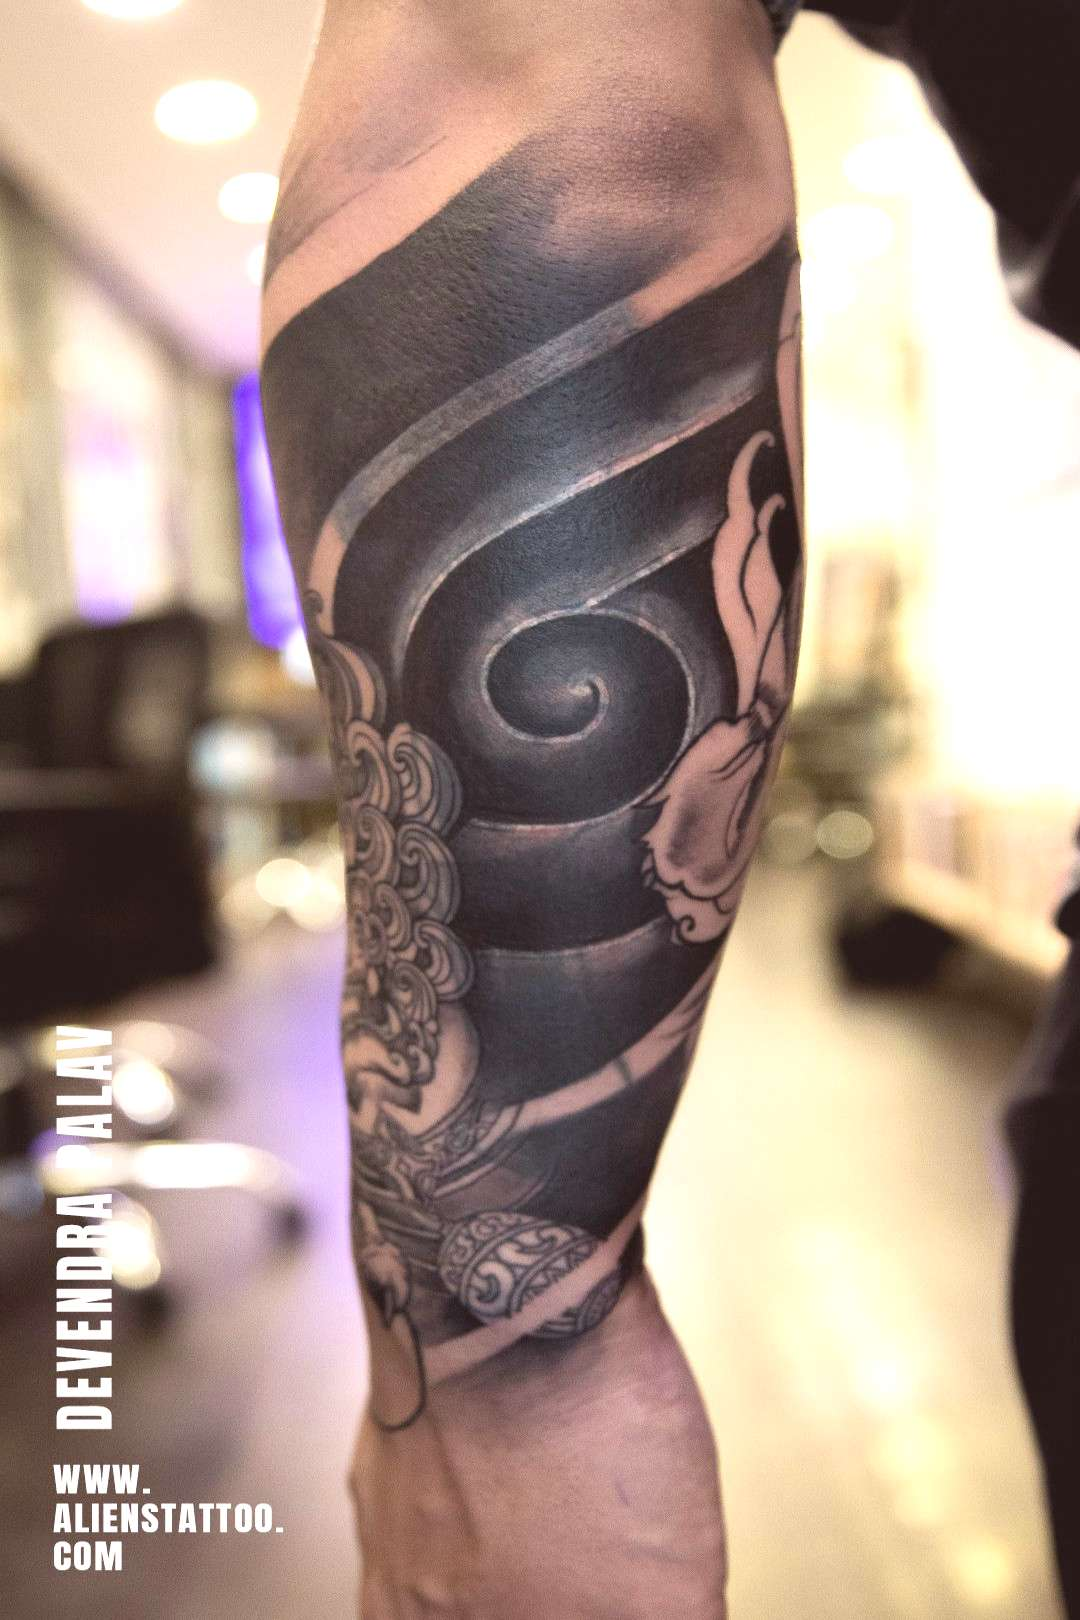 CoverUp Tattoo | Half sleeve | Aliens tattoo ,  CoverUp Tattoo | Half sleeve | Aliens tattoo ,